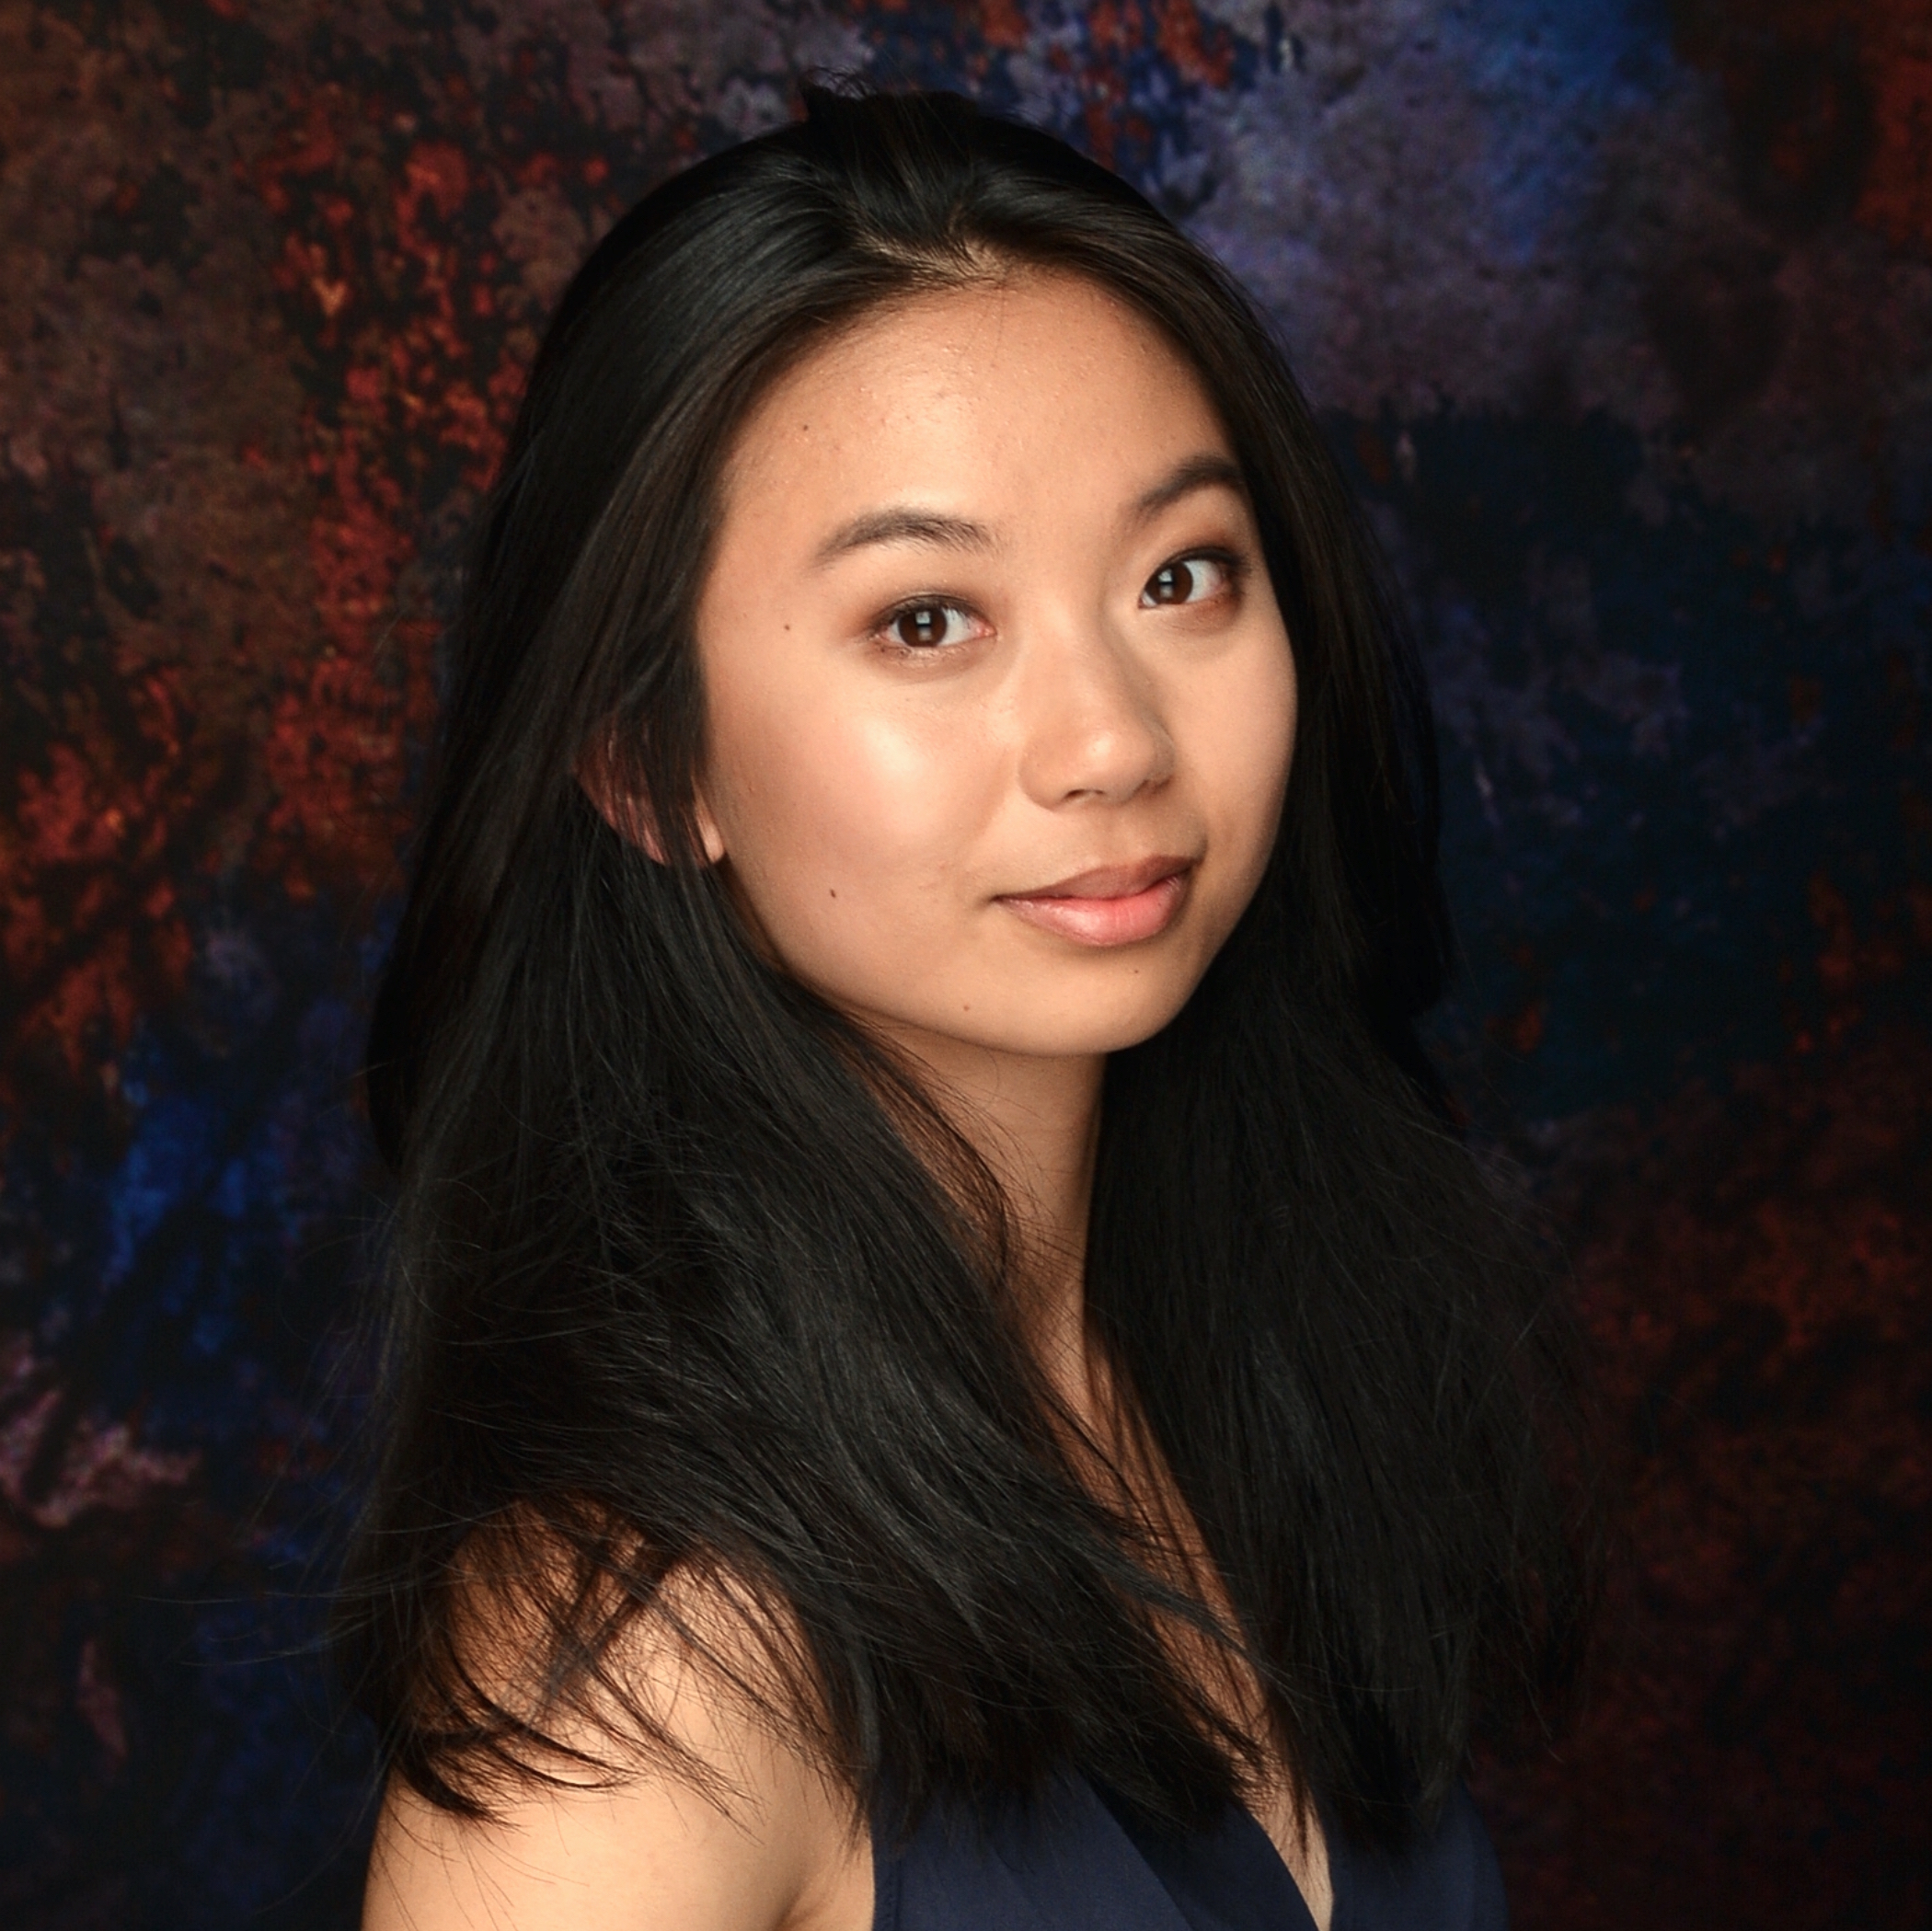 "Alice Wang is a third-year undergraduate student at Stanford University studying Materials Science & Engineering. She is interested in the importance of interpersonal narratives in both art and medicine, and seeks to better understand the healing potential of narrative medicine. Her artwork "" Beyond Blue "" appears in the Spring 2018 Intima."